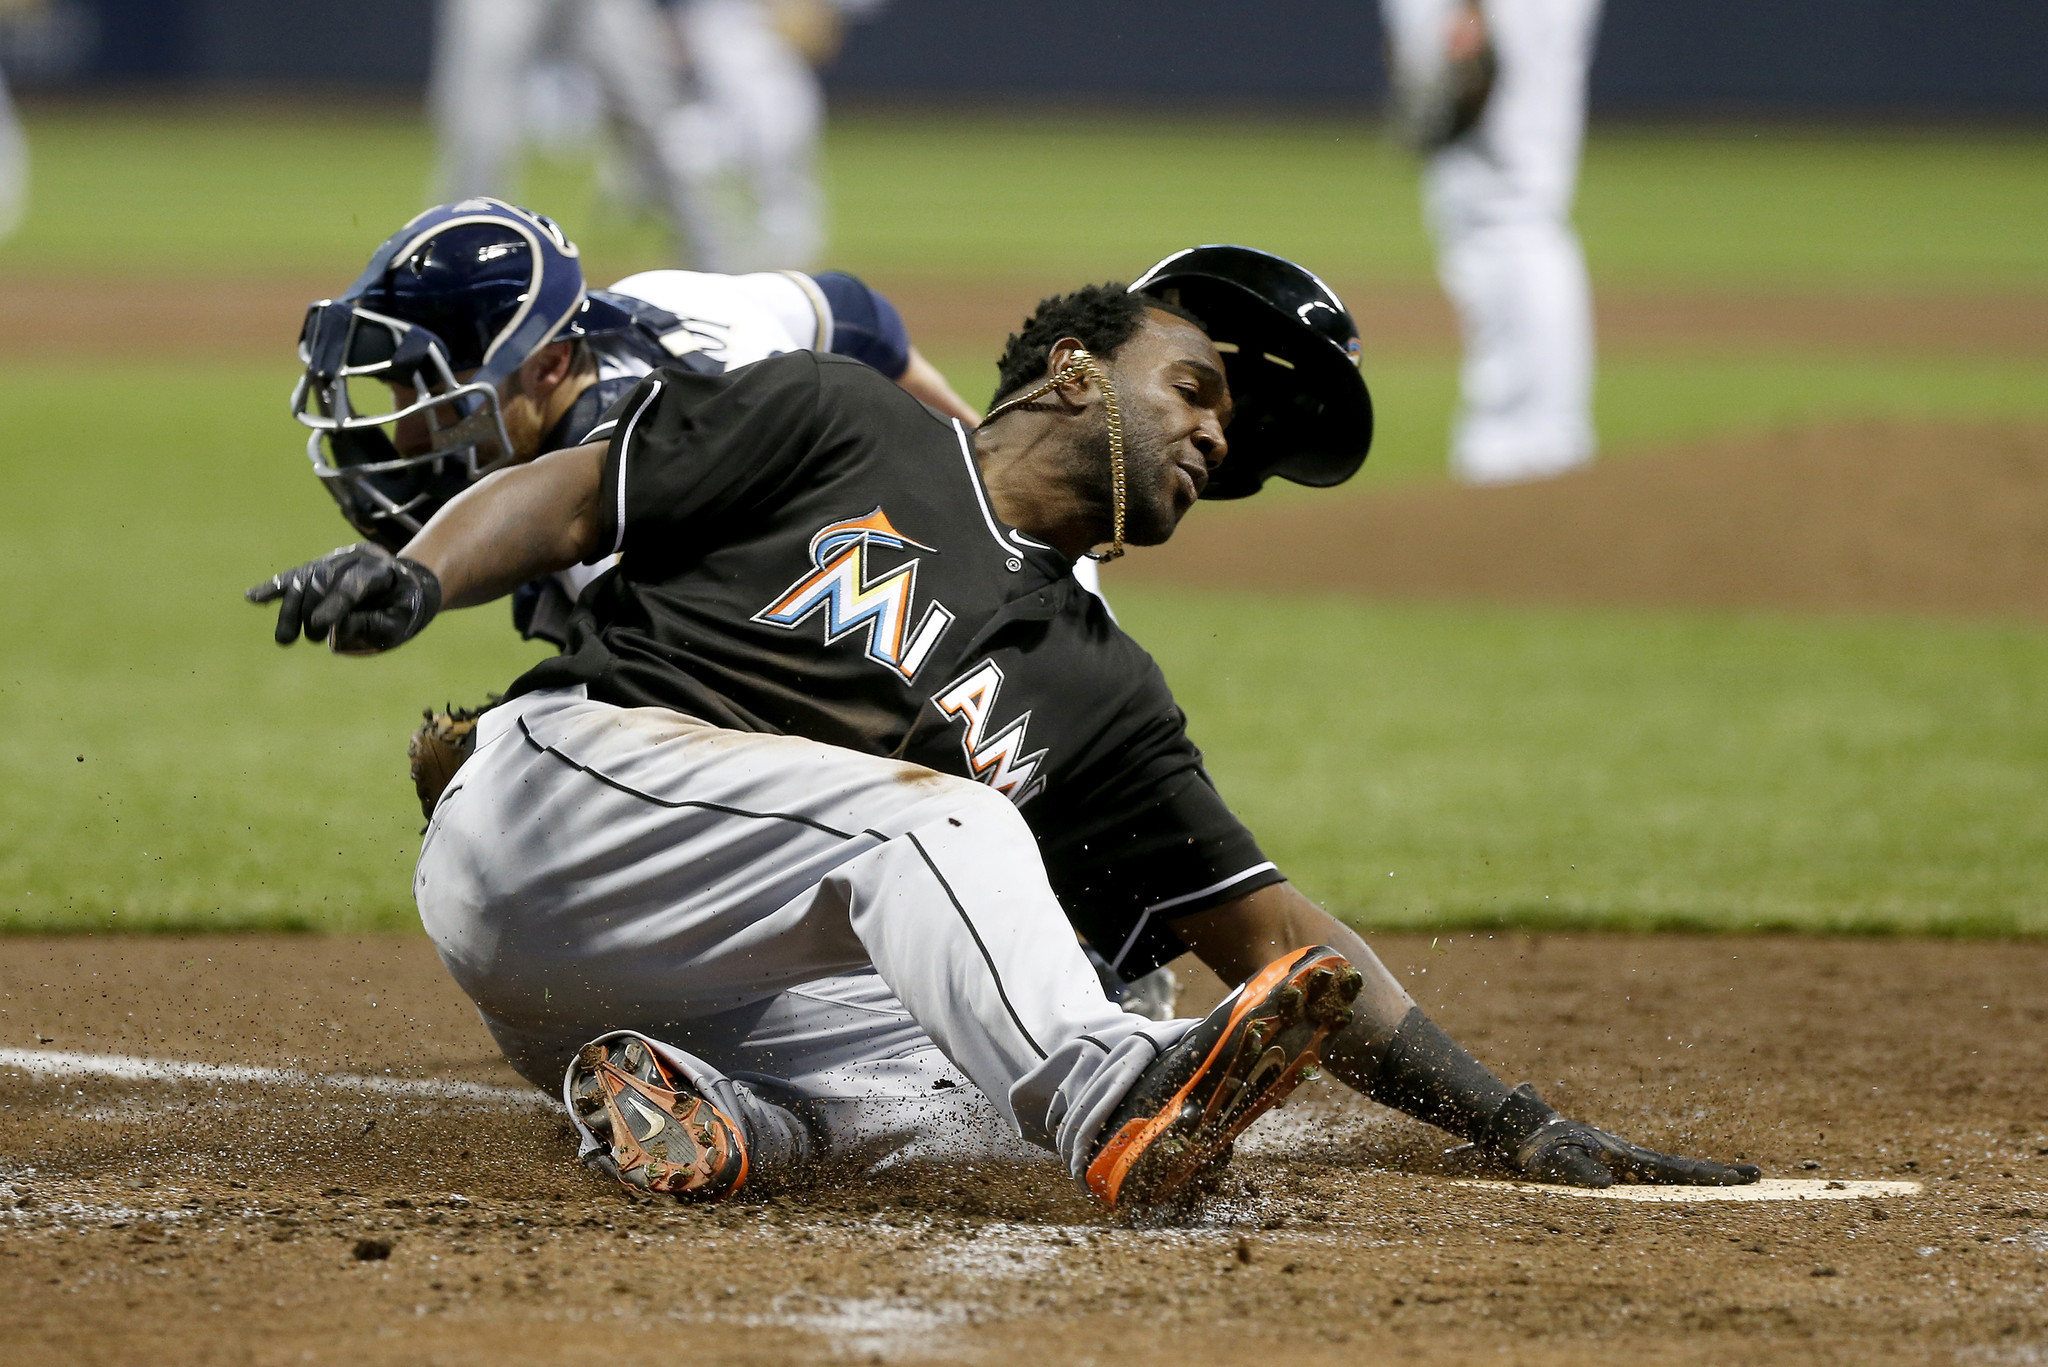 Sfl-marlins-hit-4-hrs-survive-17-lob-to-top-brewers-win-7th-in-a-row-20160430